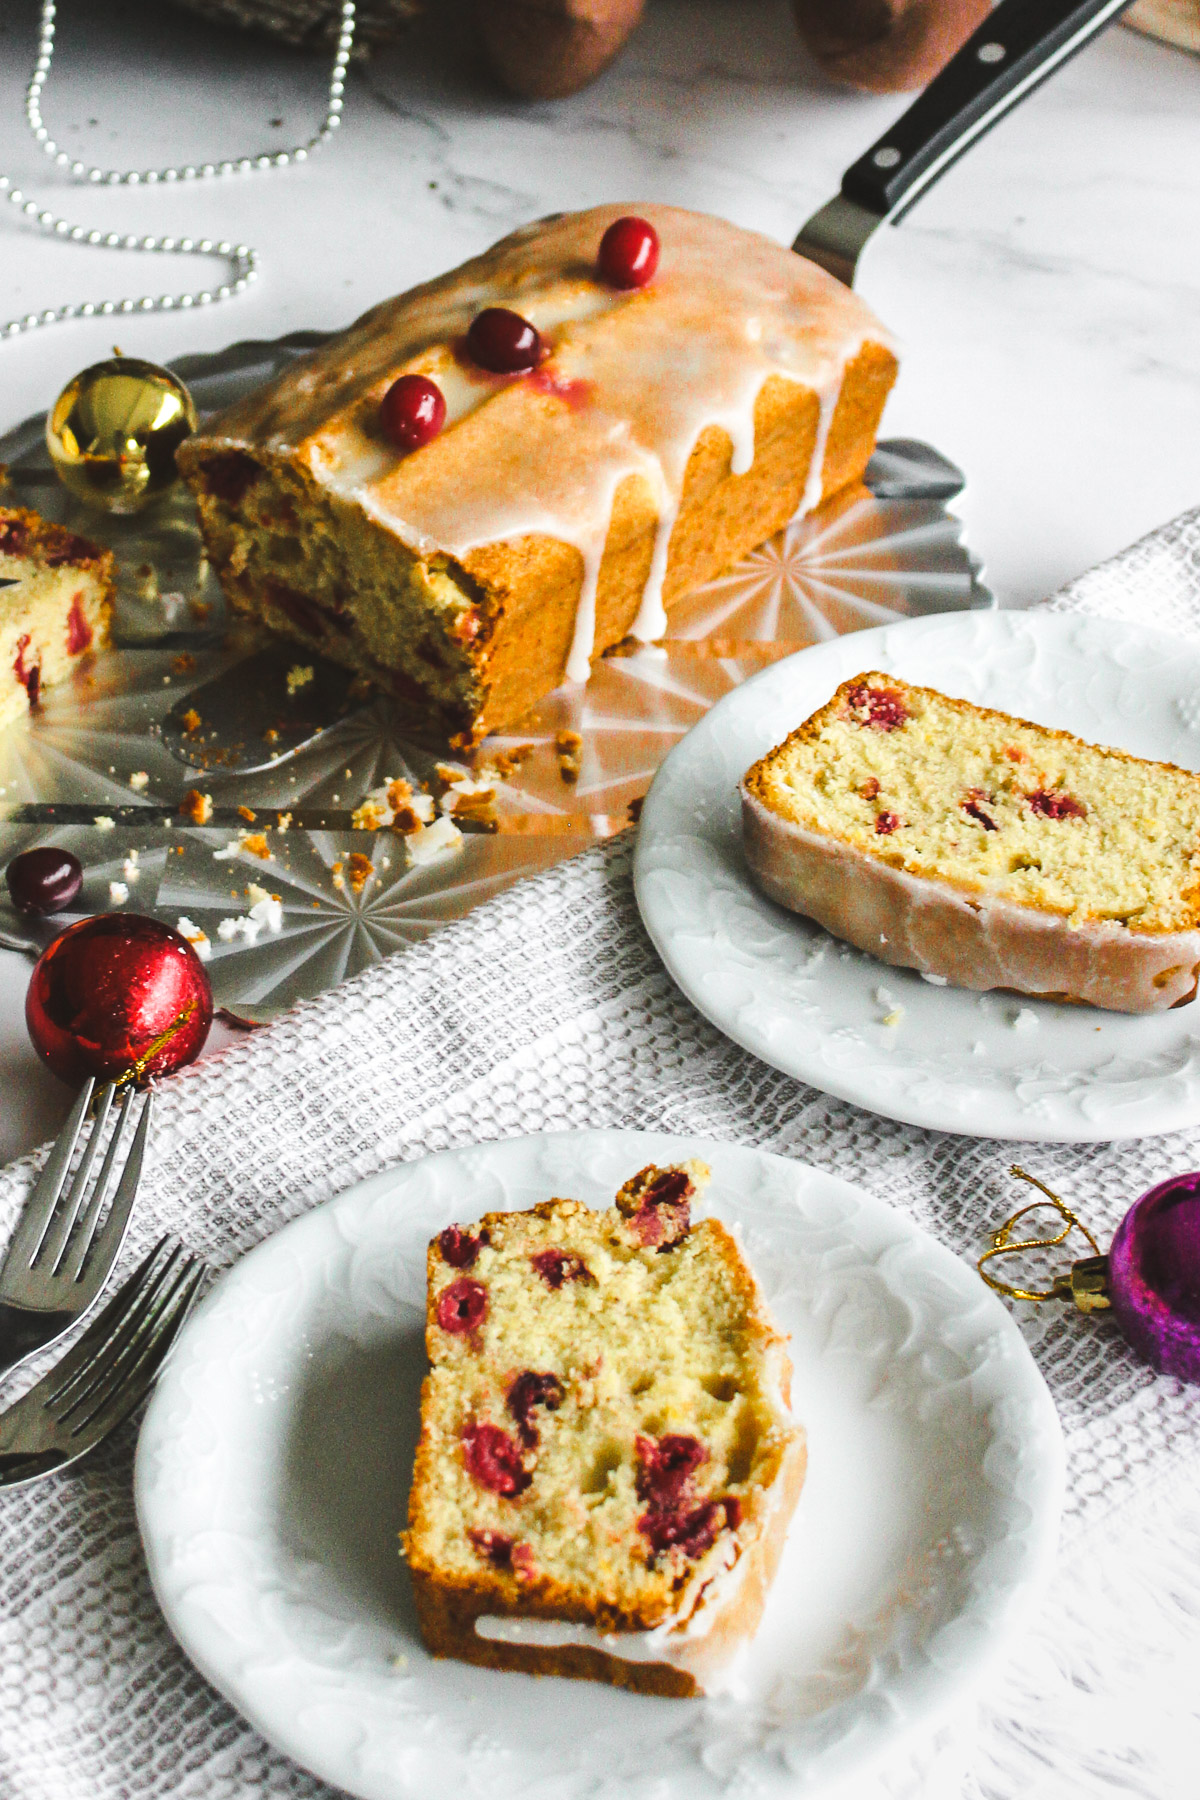 slice of holiday pound cake with cranberries with holiday decorations